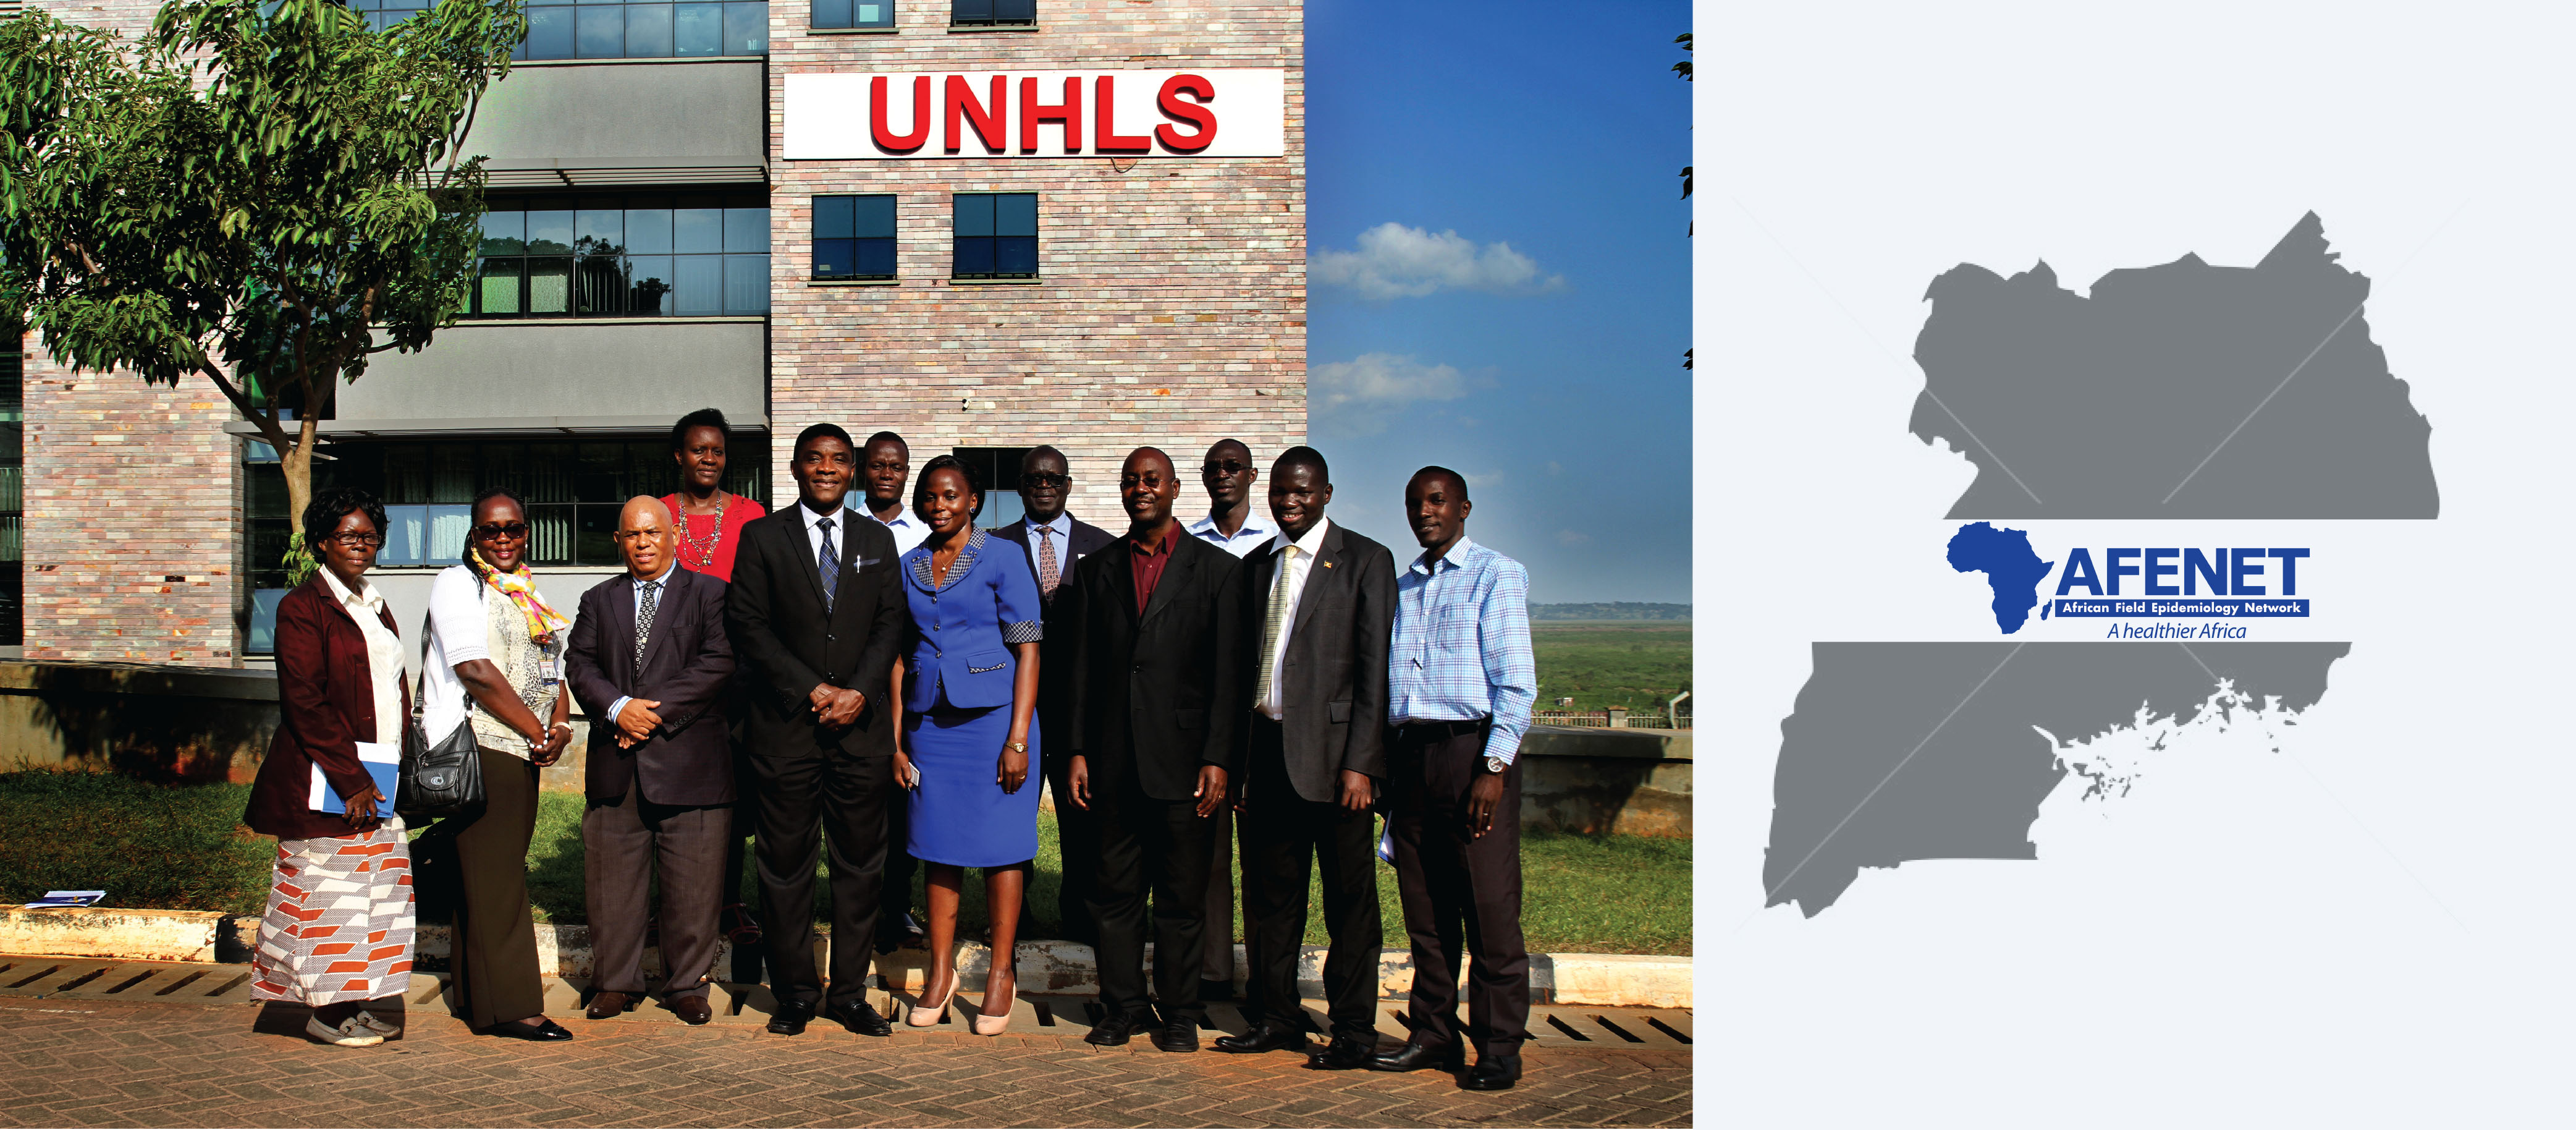 AFENET team led by the Executive Director – Dr Chima Ohuabunwo during their courtesy visit to the Uganda National Health Laboratory Services (UNHLS) in Kampala, Uganda